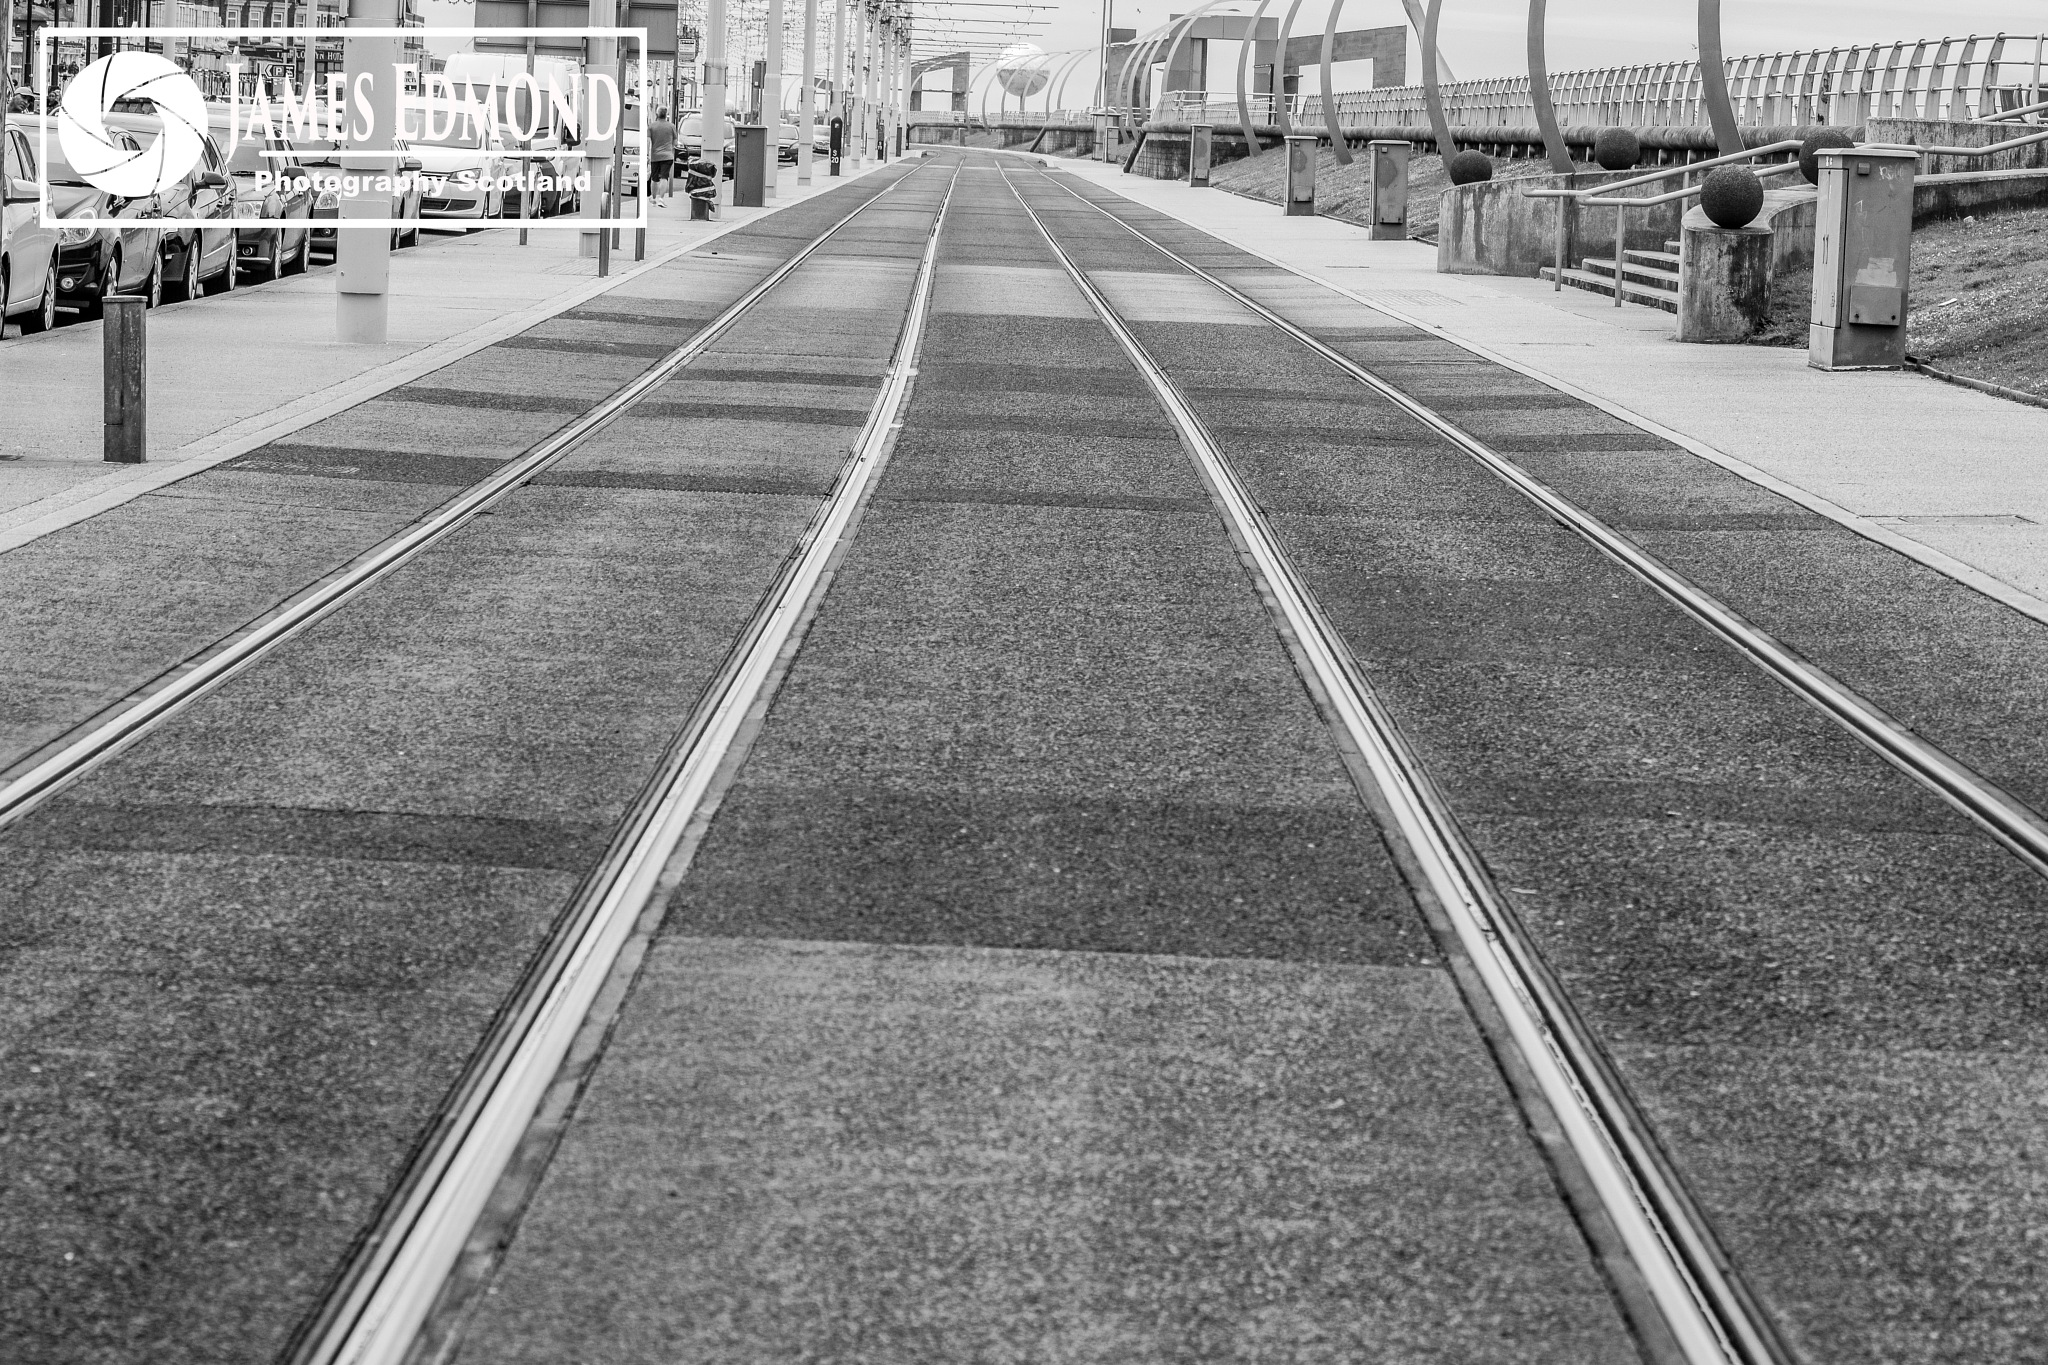 Tram lines in Monochrome by James Edmond Photography